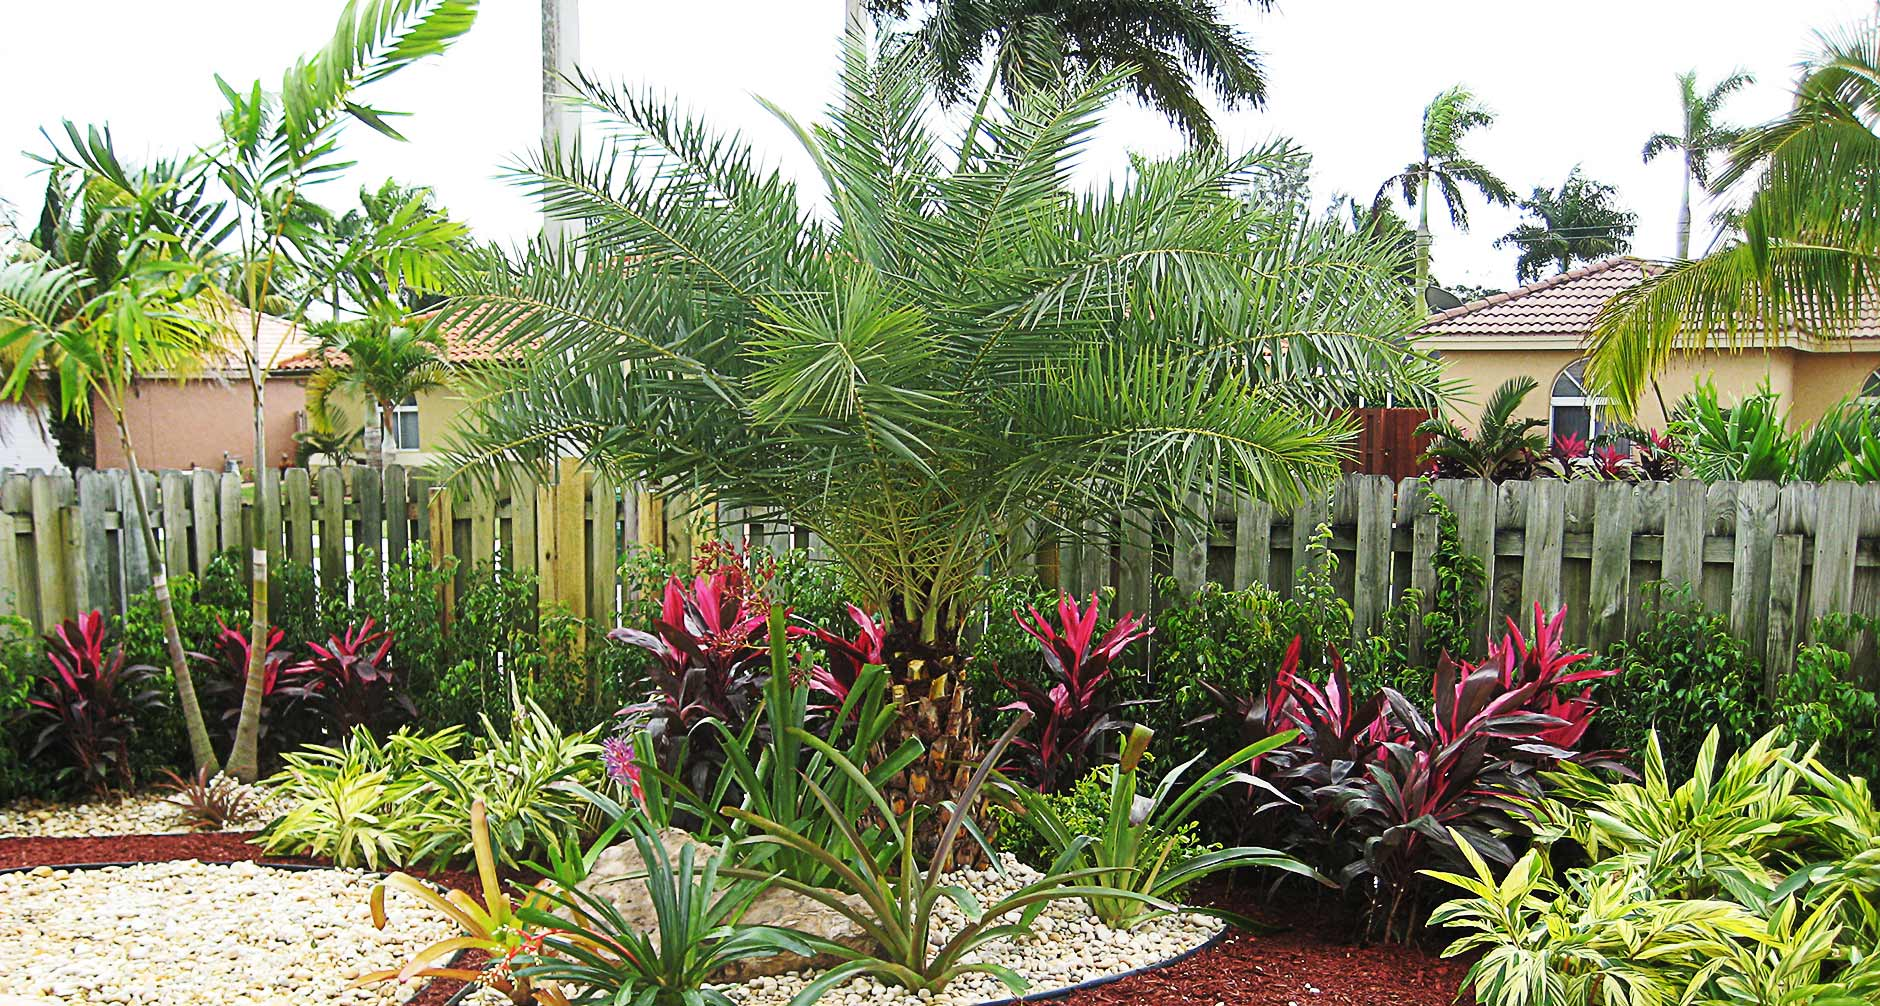 Bl landscape design photos florida diy Florida landscape design ideas